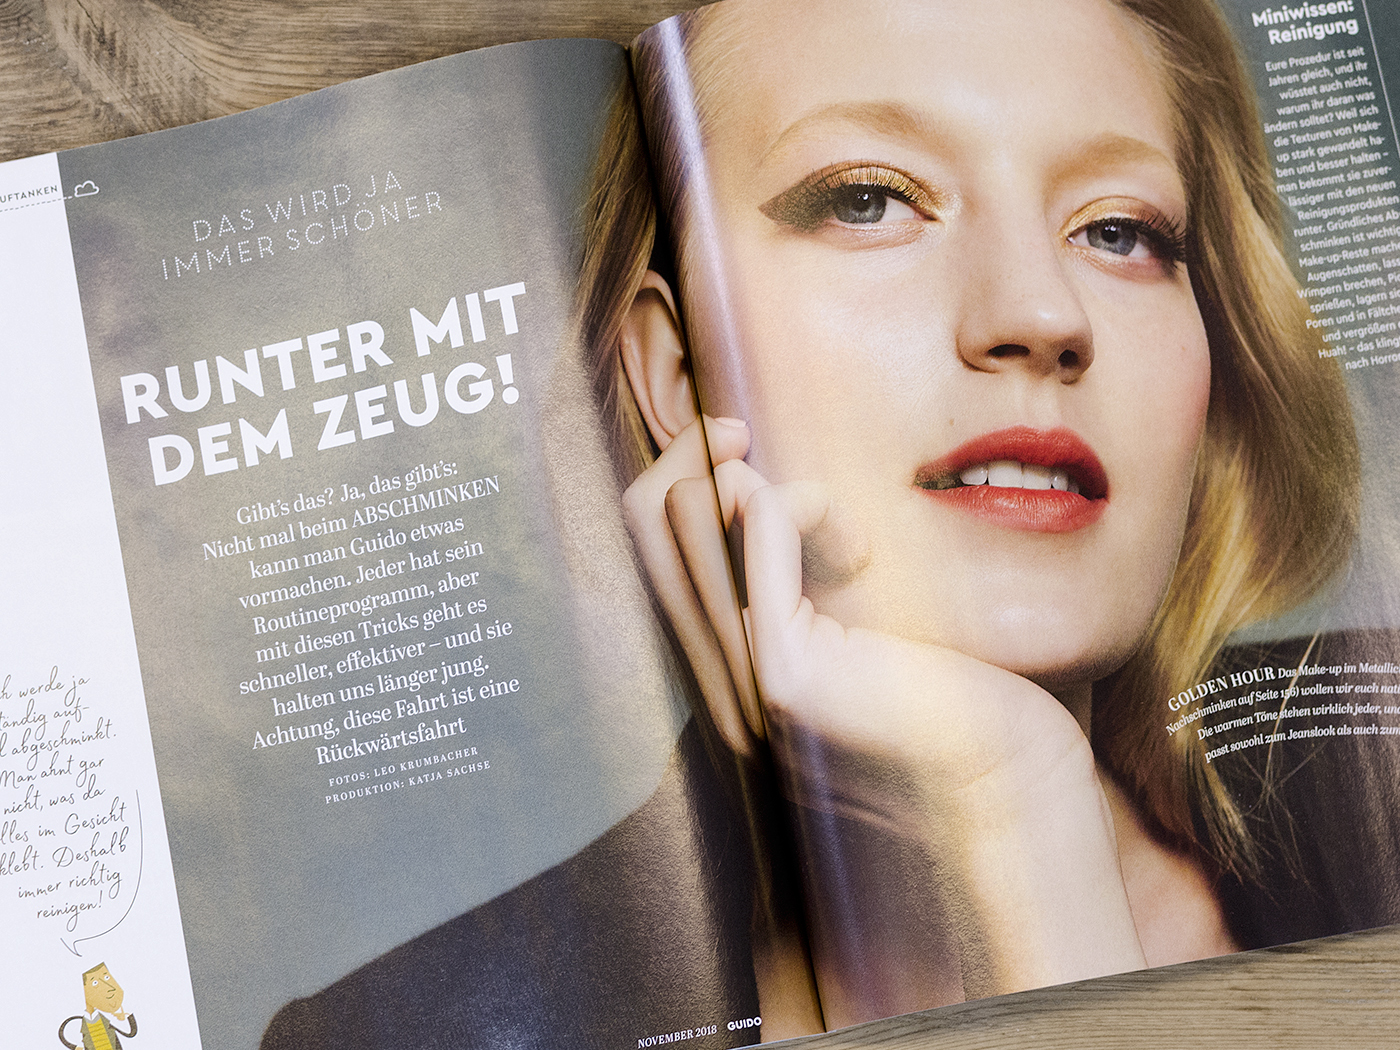 Type Mates In Use Guido Maria Kretschmer Fashion Magazine Gruner Jahr 15 Cera Pro Cera Compact